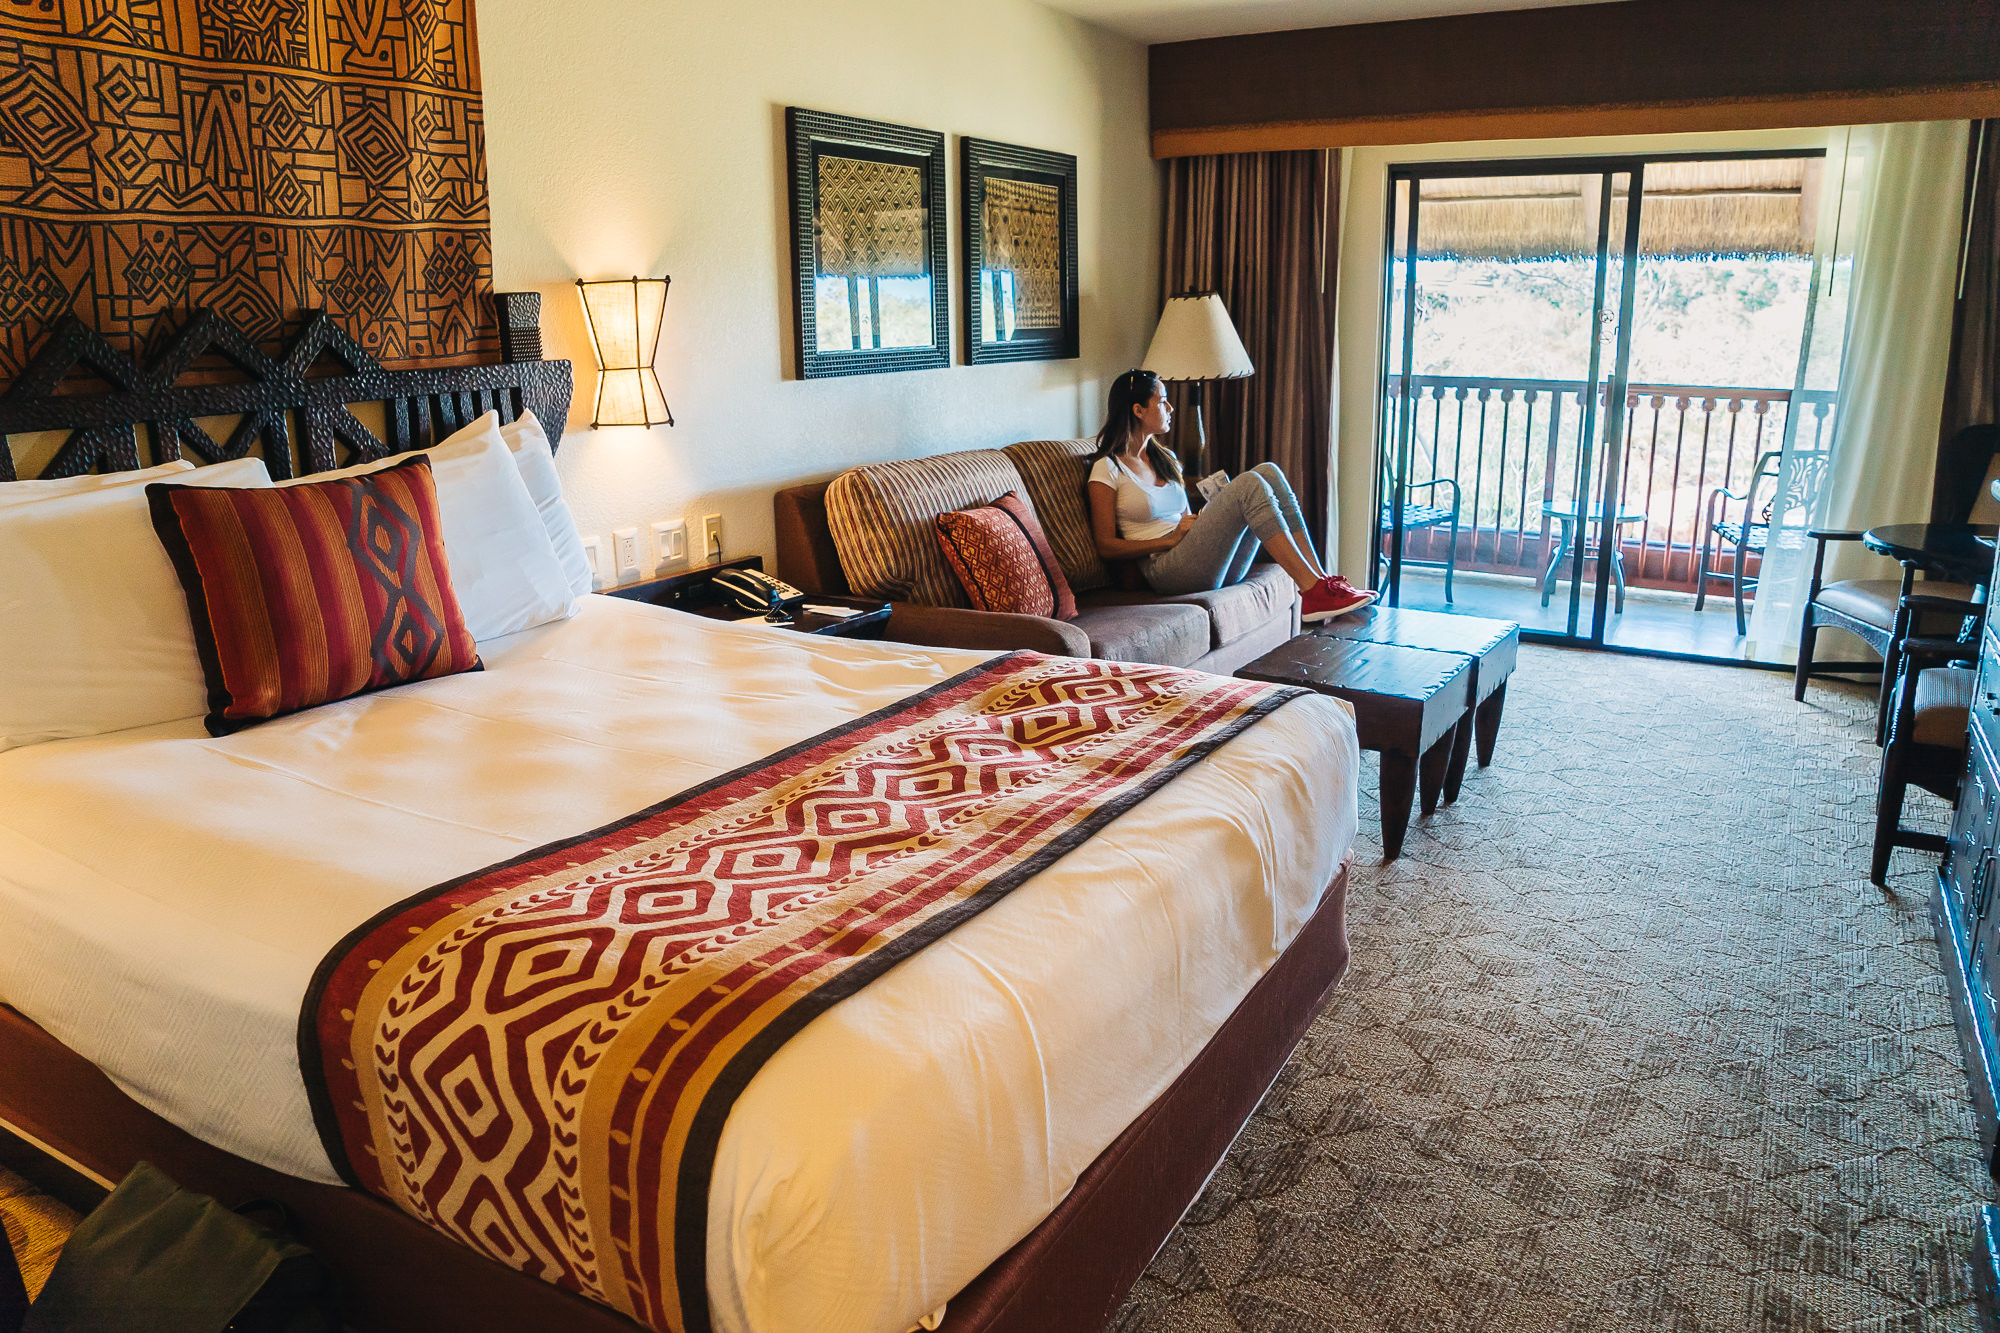 Our spacious room at the Animal Kingdom Lodge with safari view